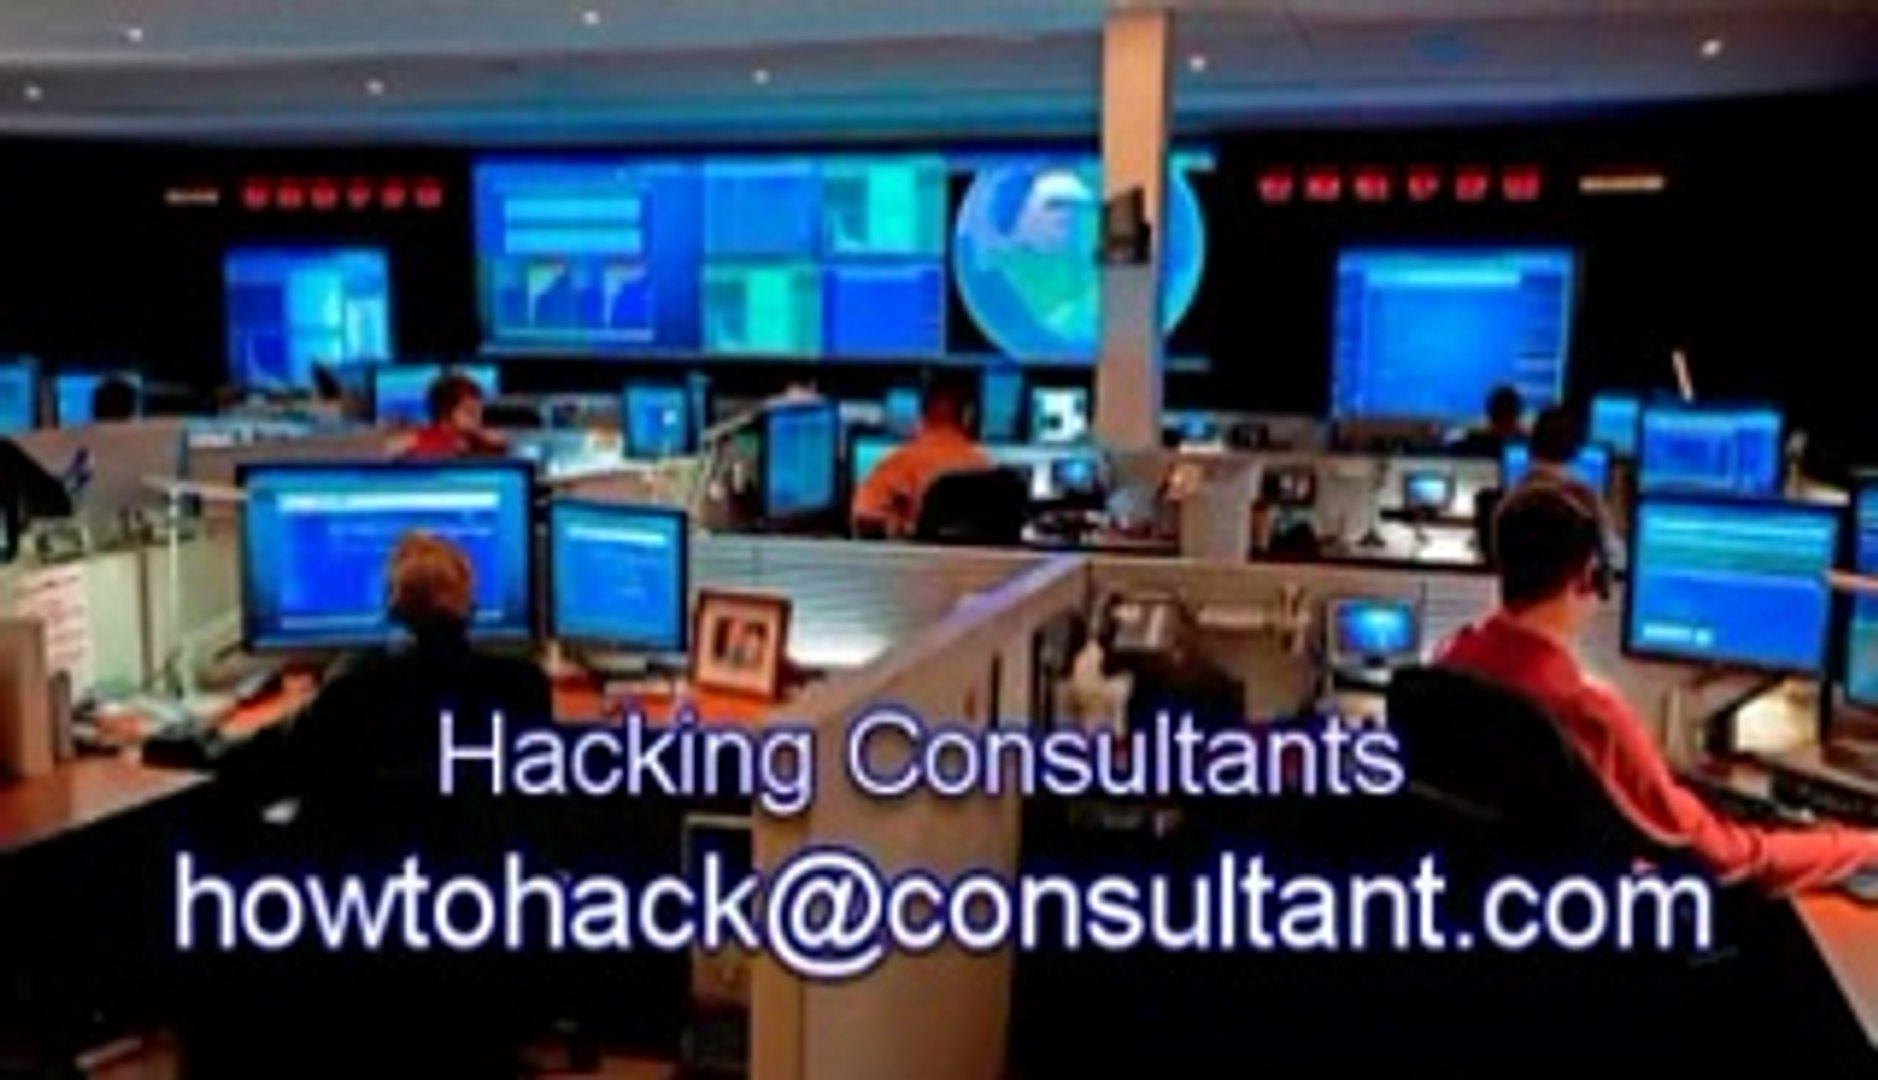 how do you hack,how to hack,how to hack a mobile phone,how to hack a pc,how to hack a phone